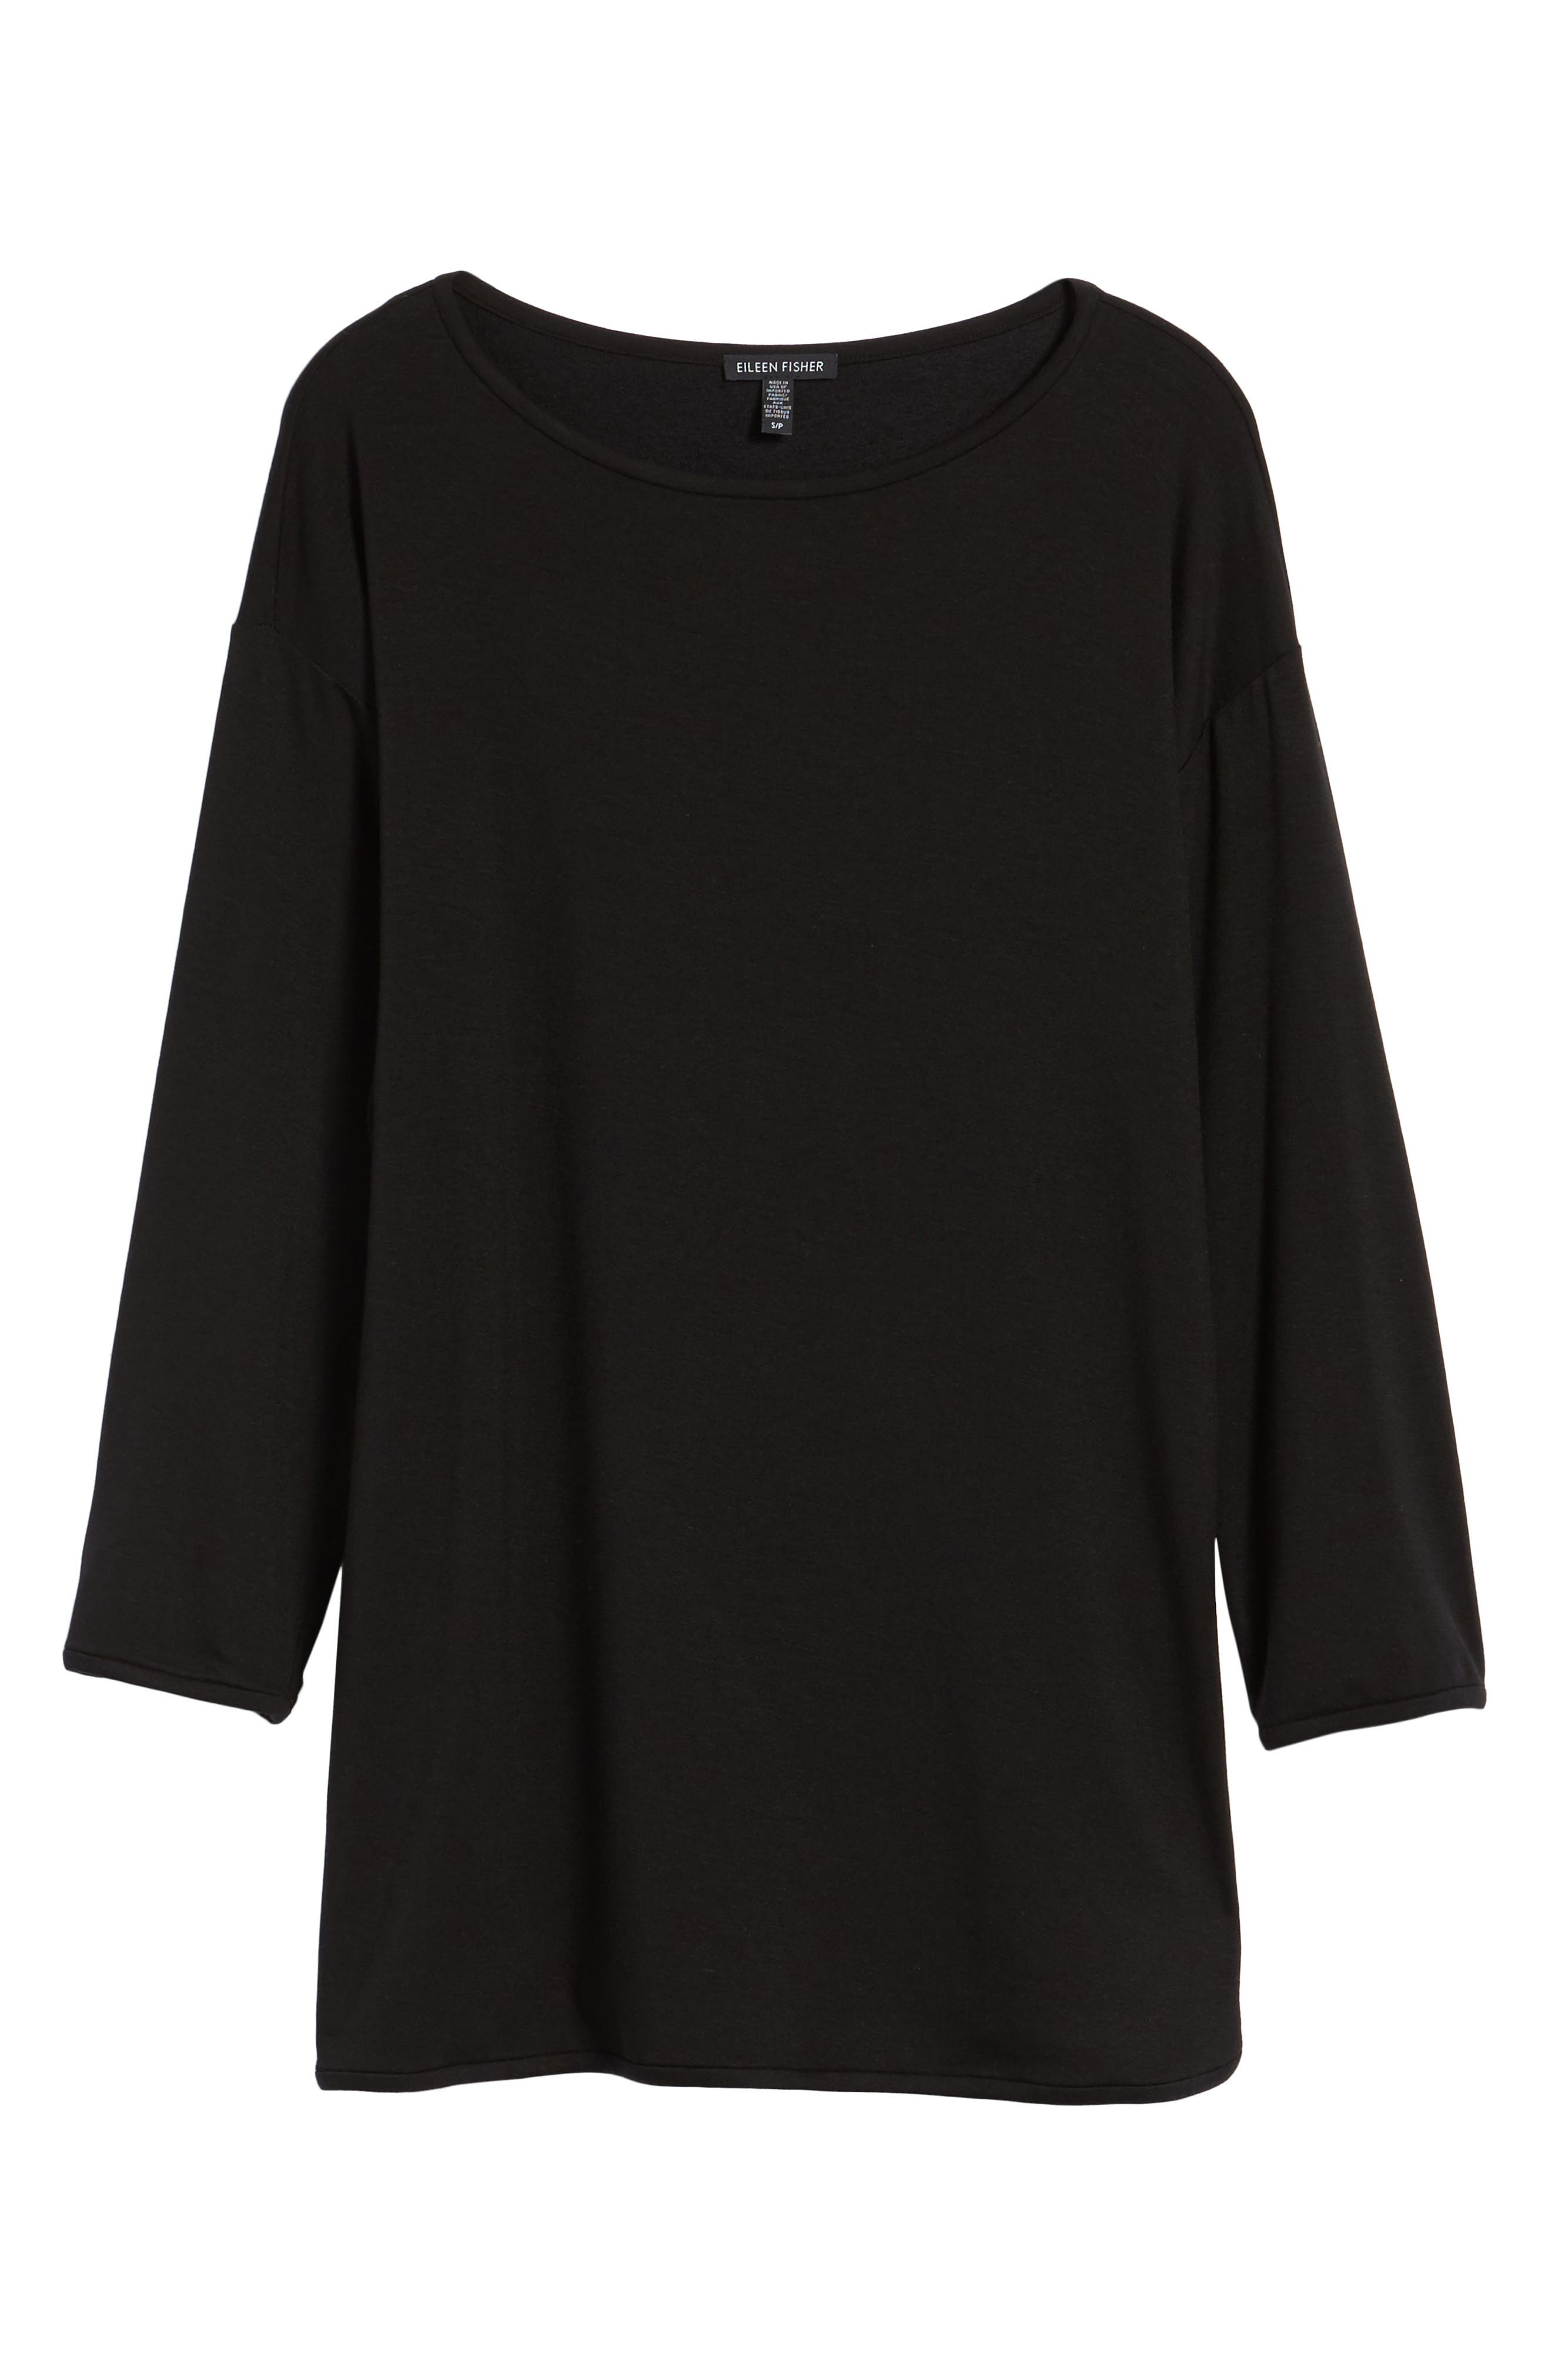 Stretch Tencel<sup>®</sup> Knit Top,                             Alternate thumbnail 6, color,                             001